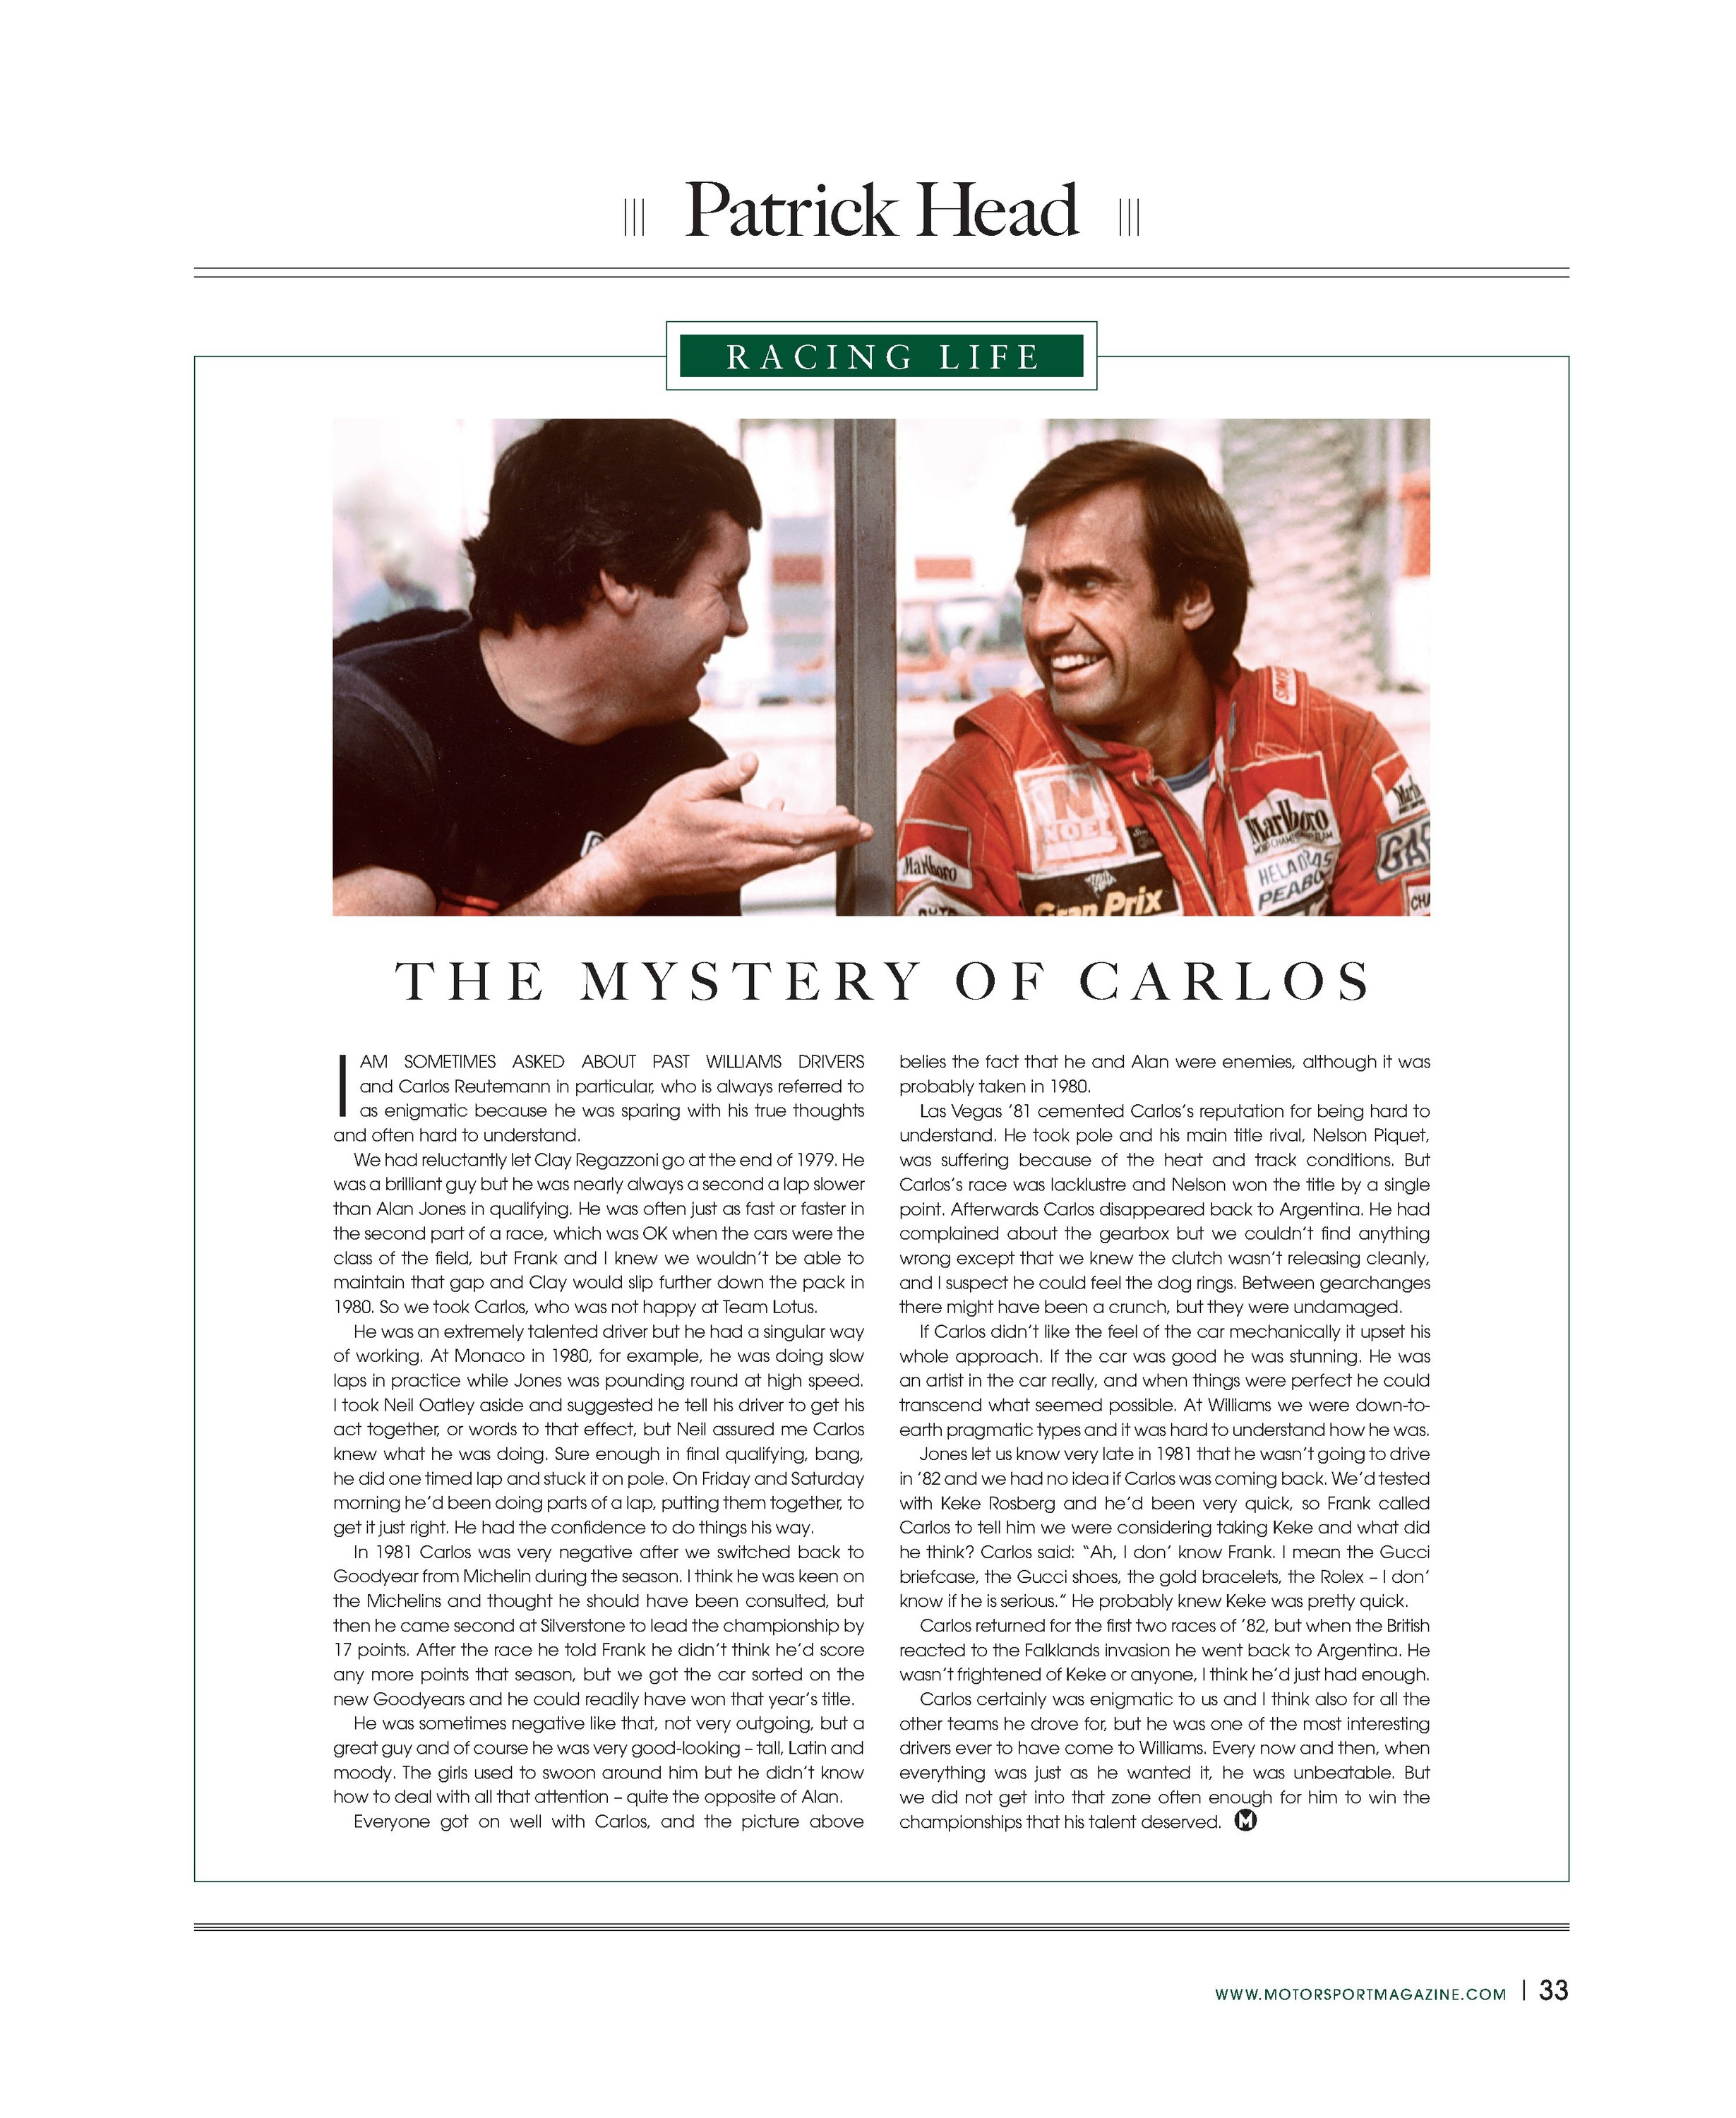 the mystery of carlos image